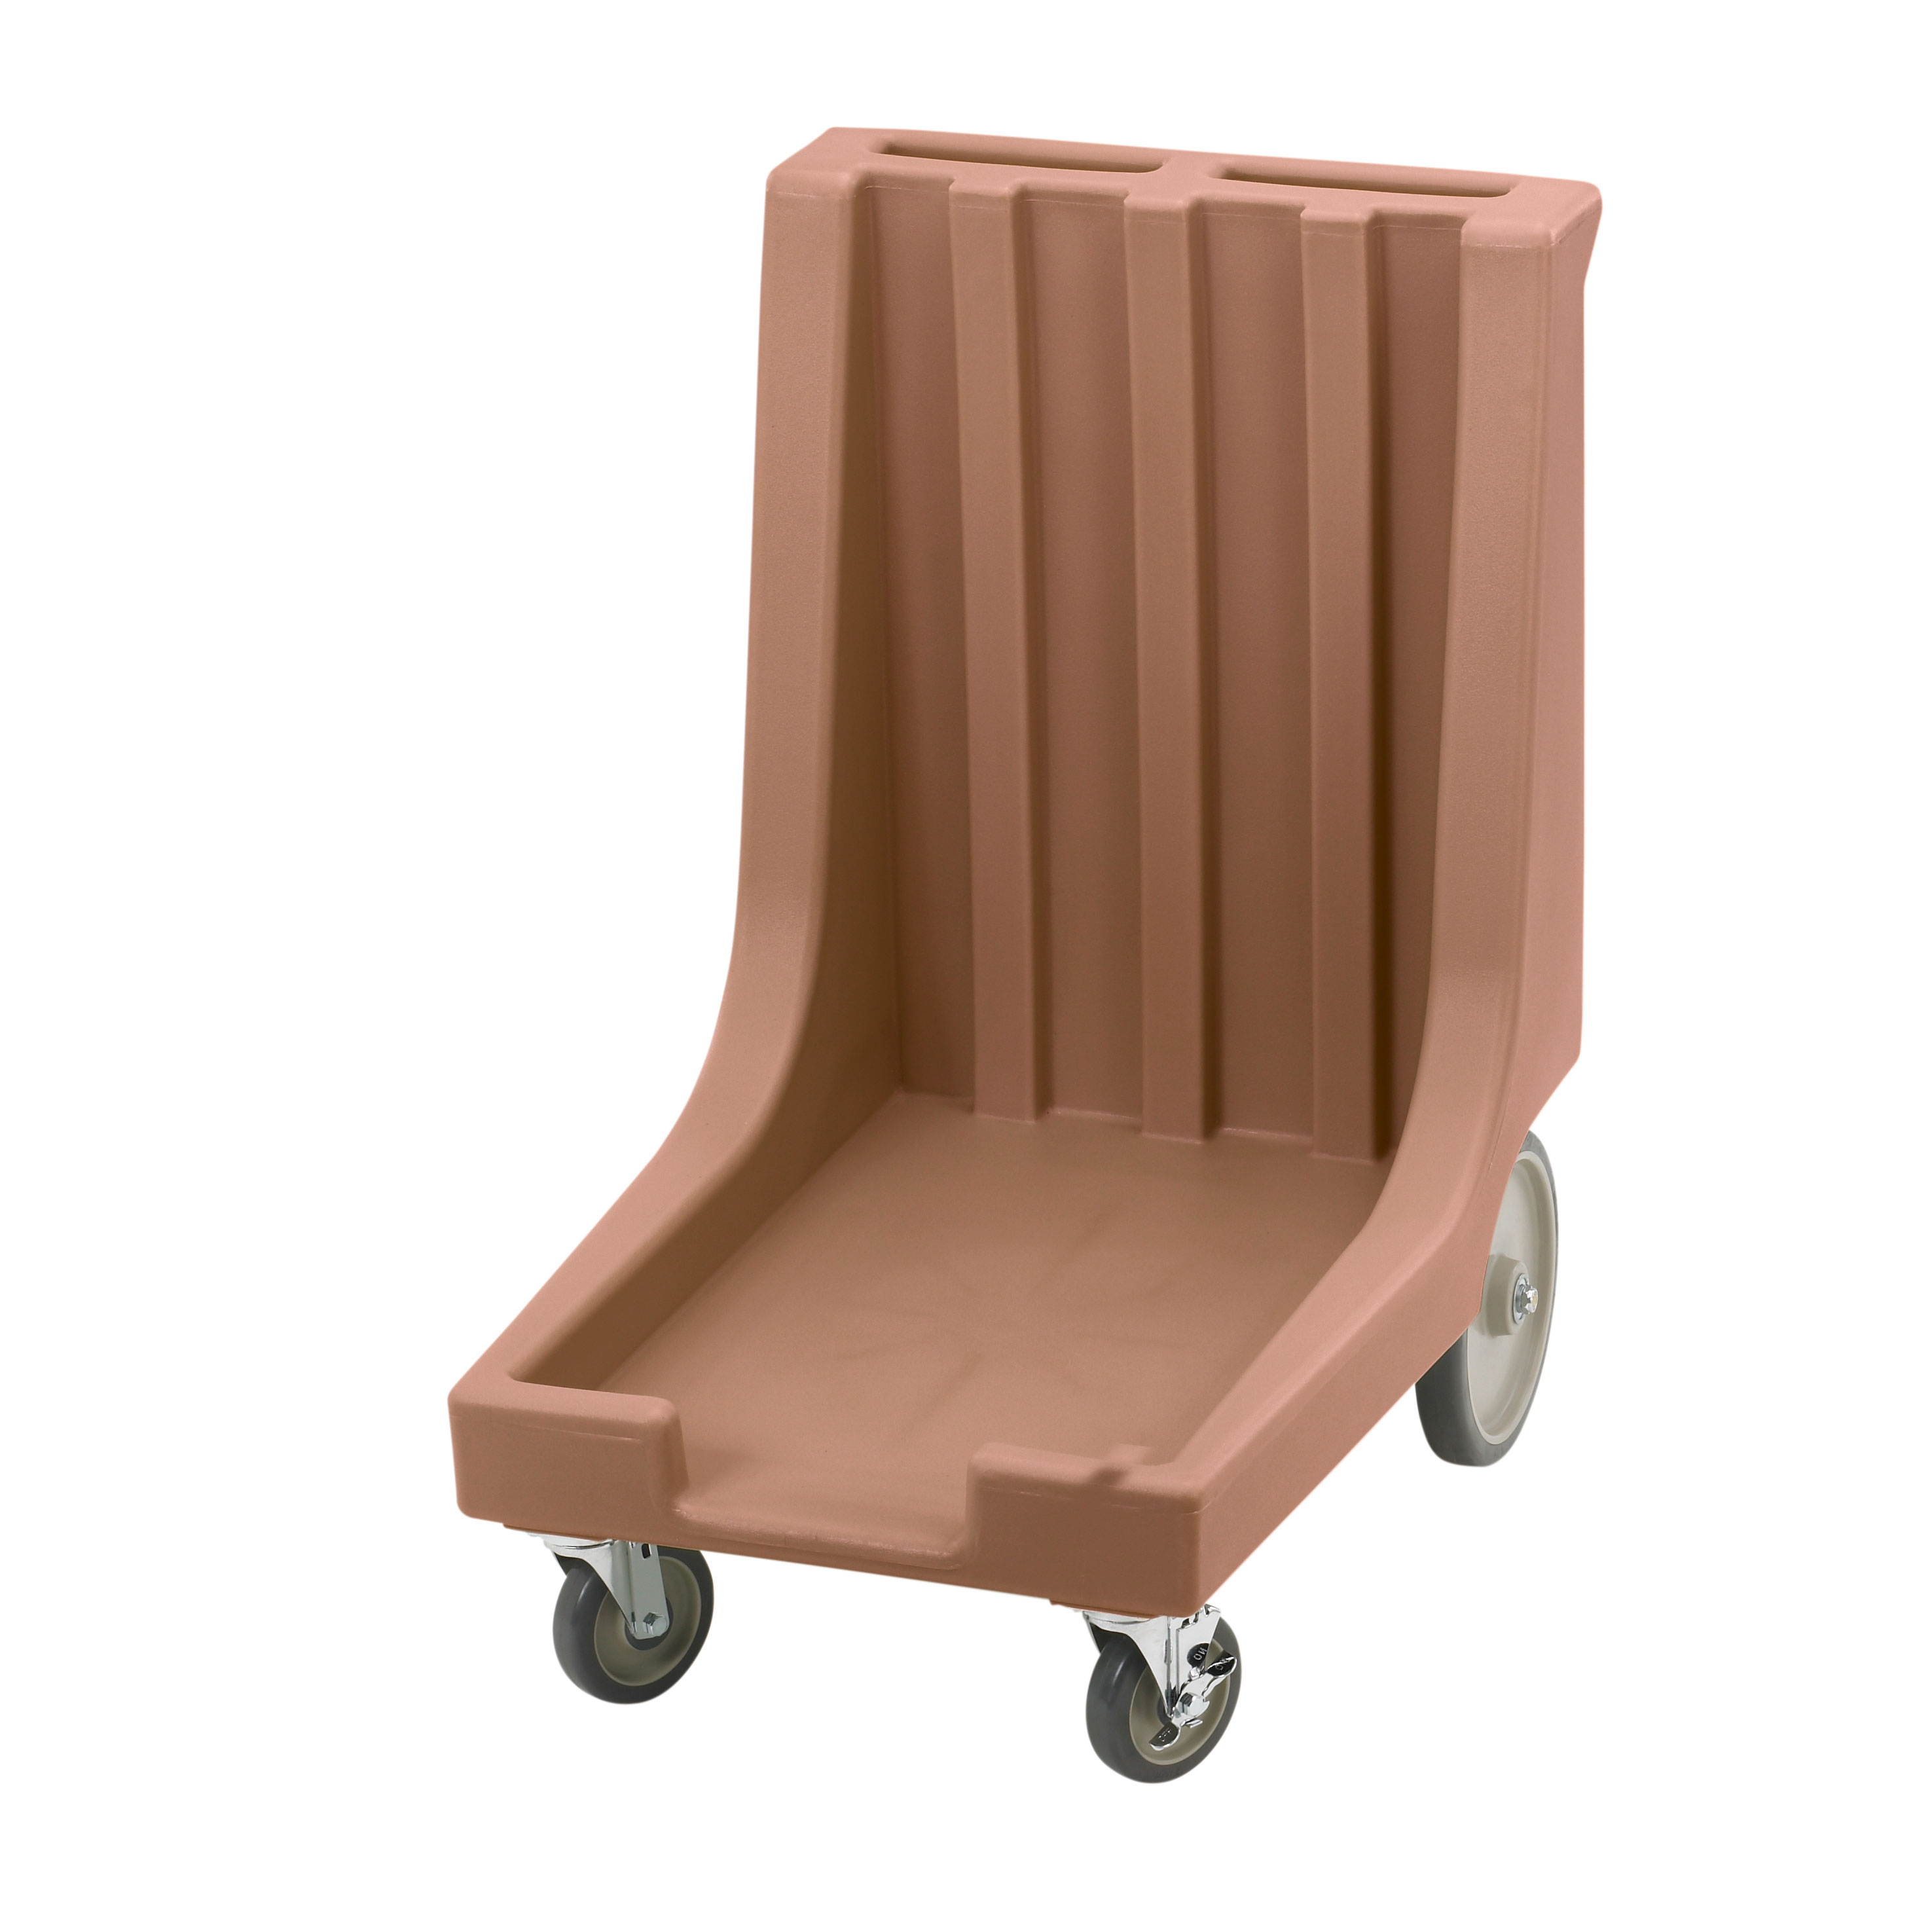 Cambro CD1826HB157 food carrier dolly